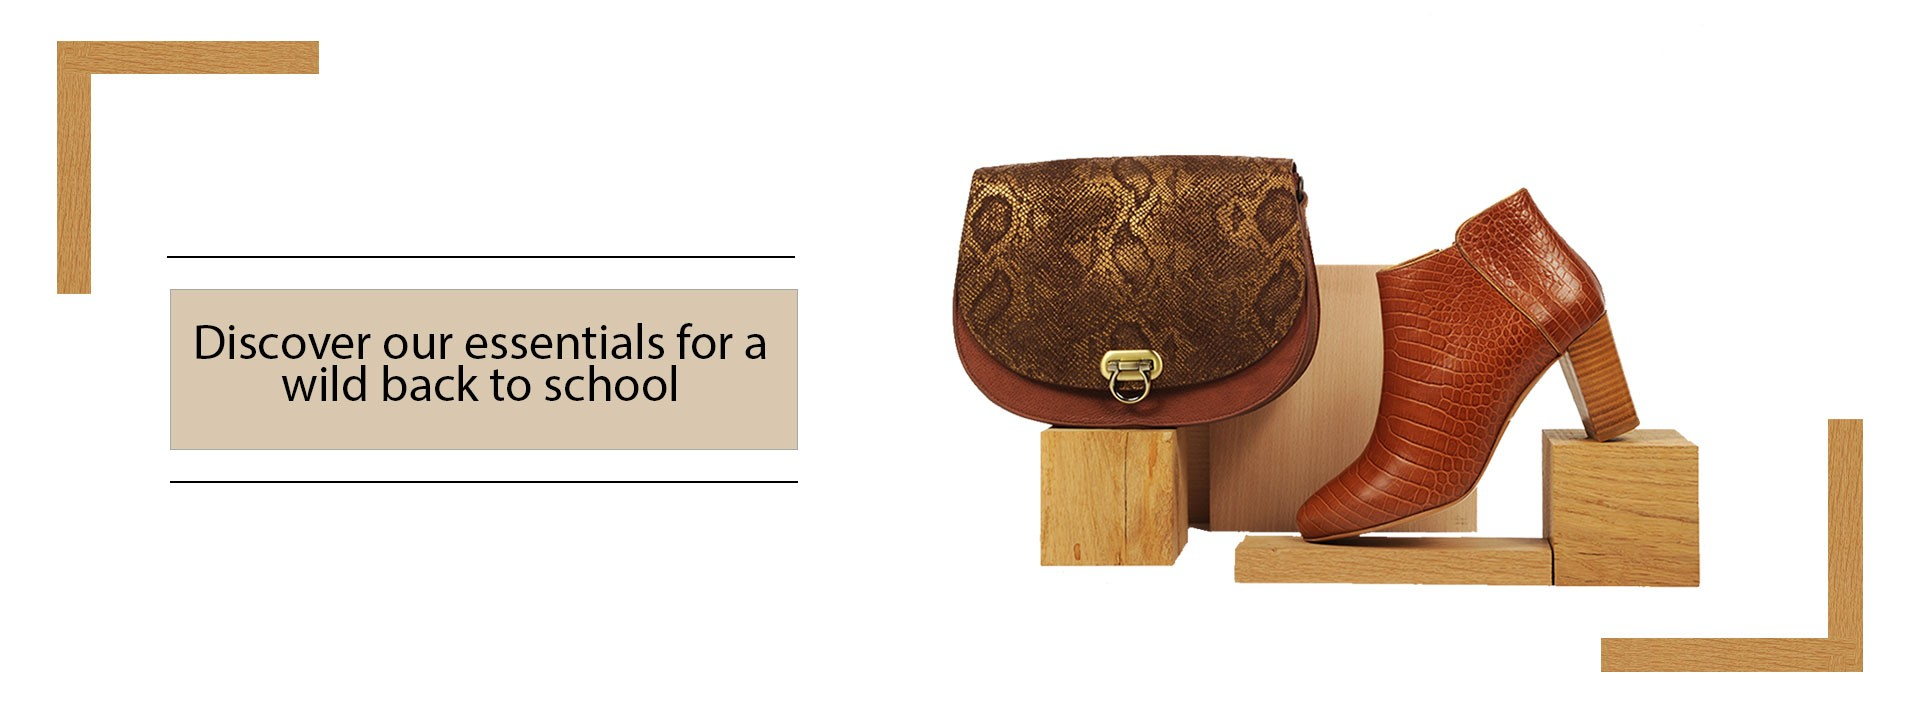 Discover our essentials for a wild back to school